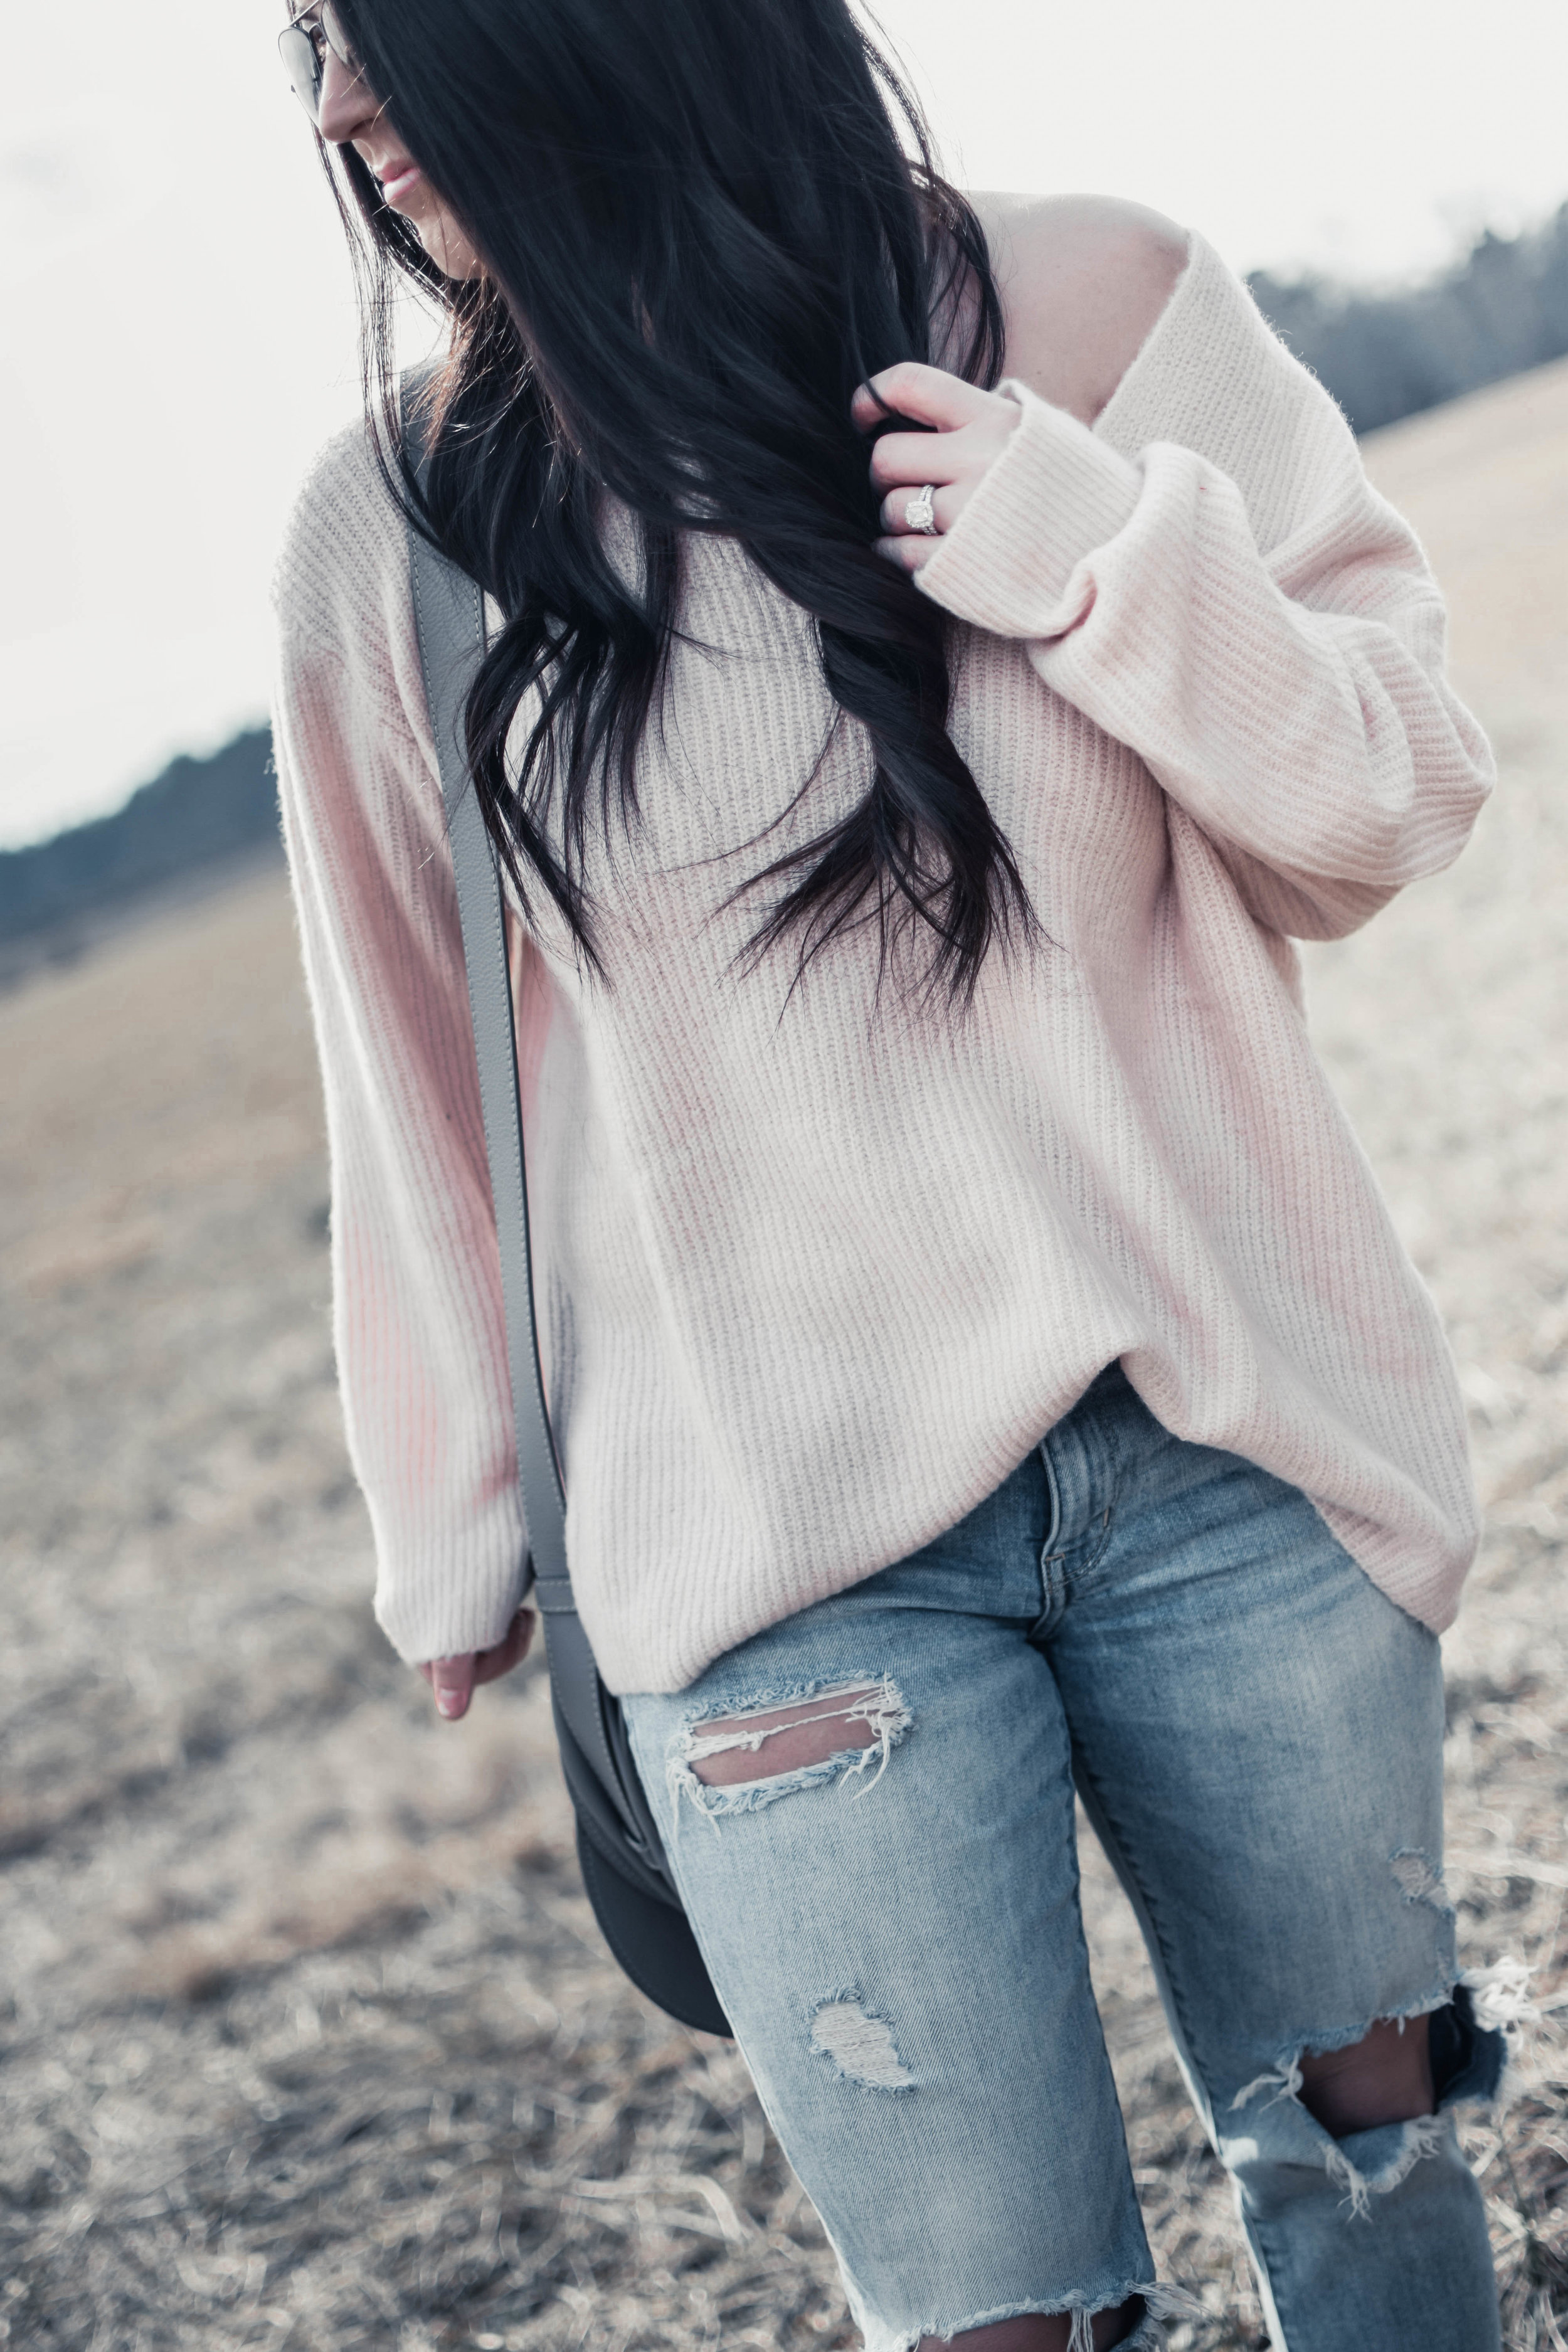 Blush Sweater for Valentine's Day | Pine Barren Beauty